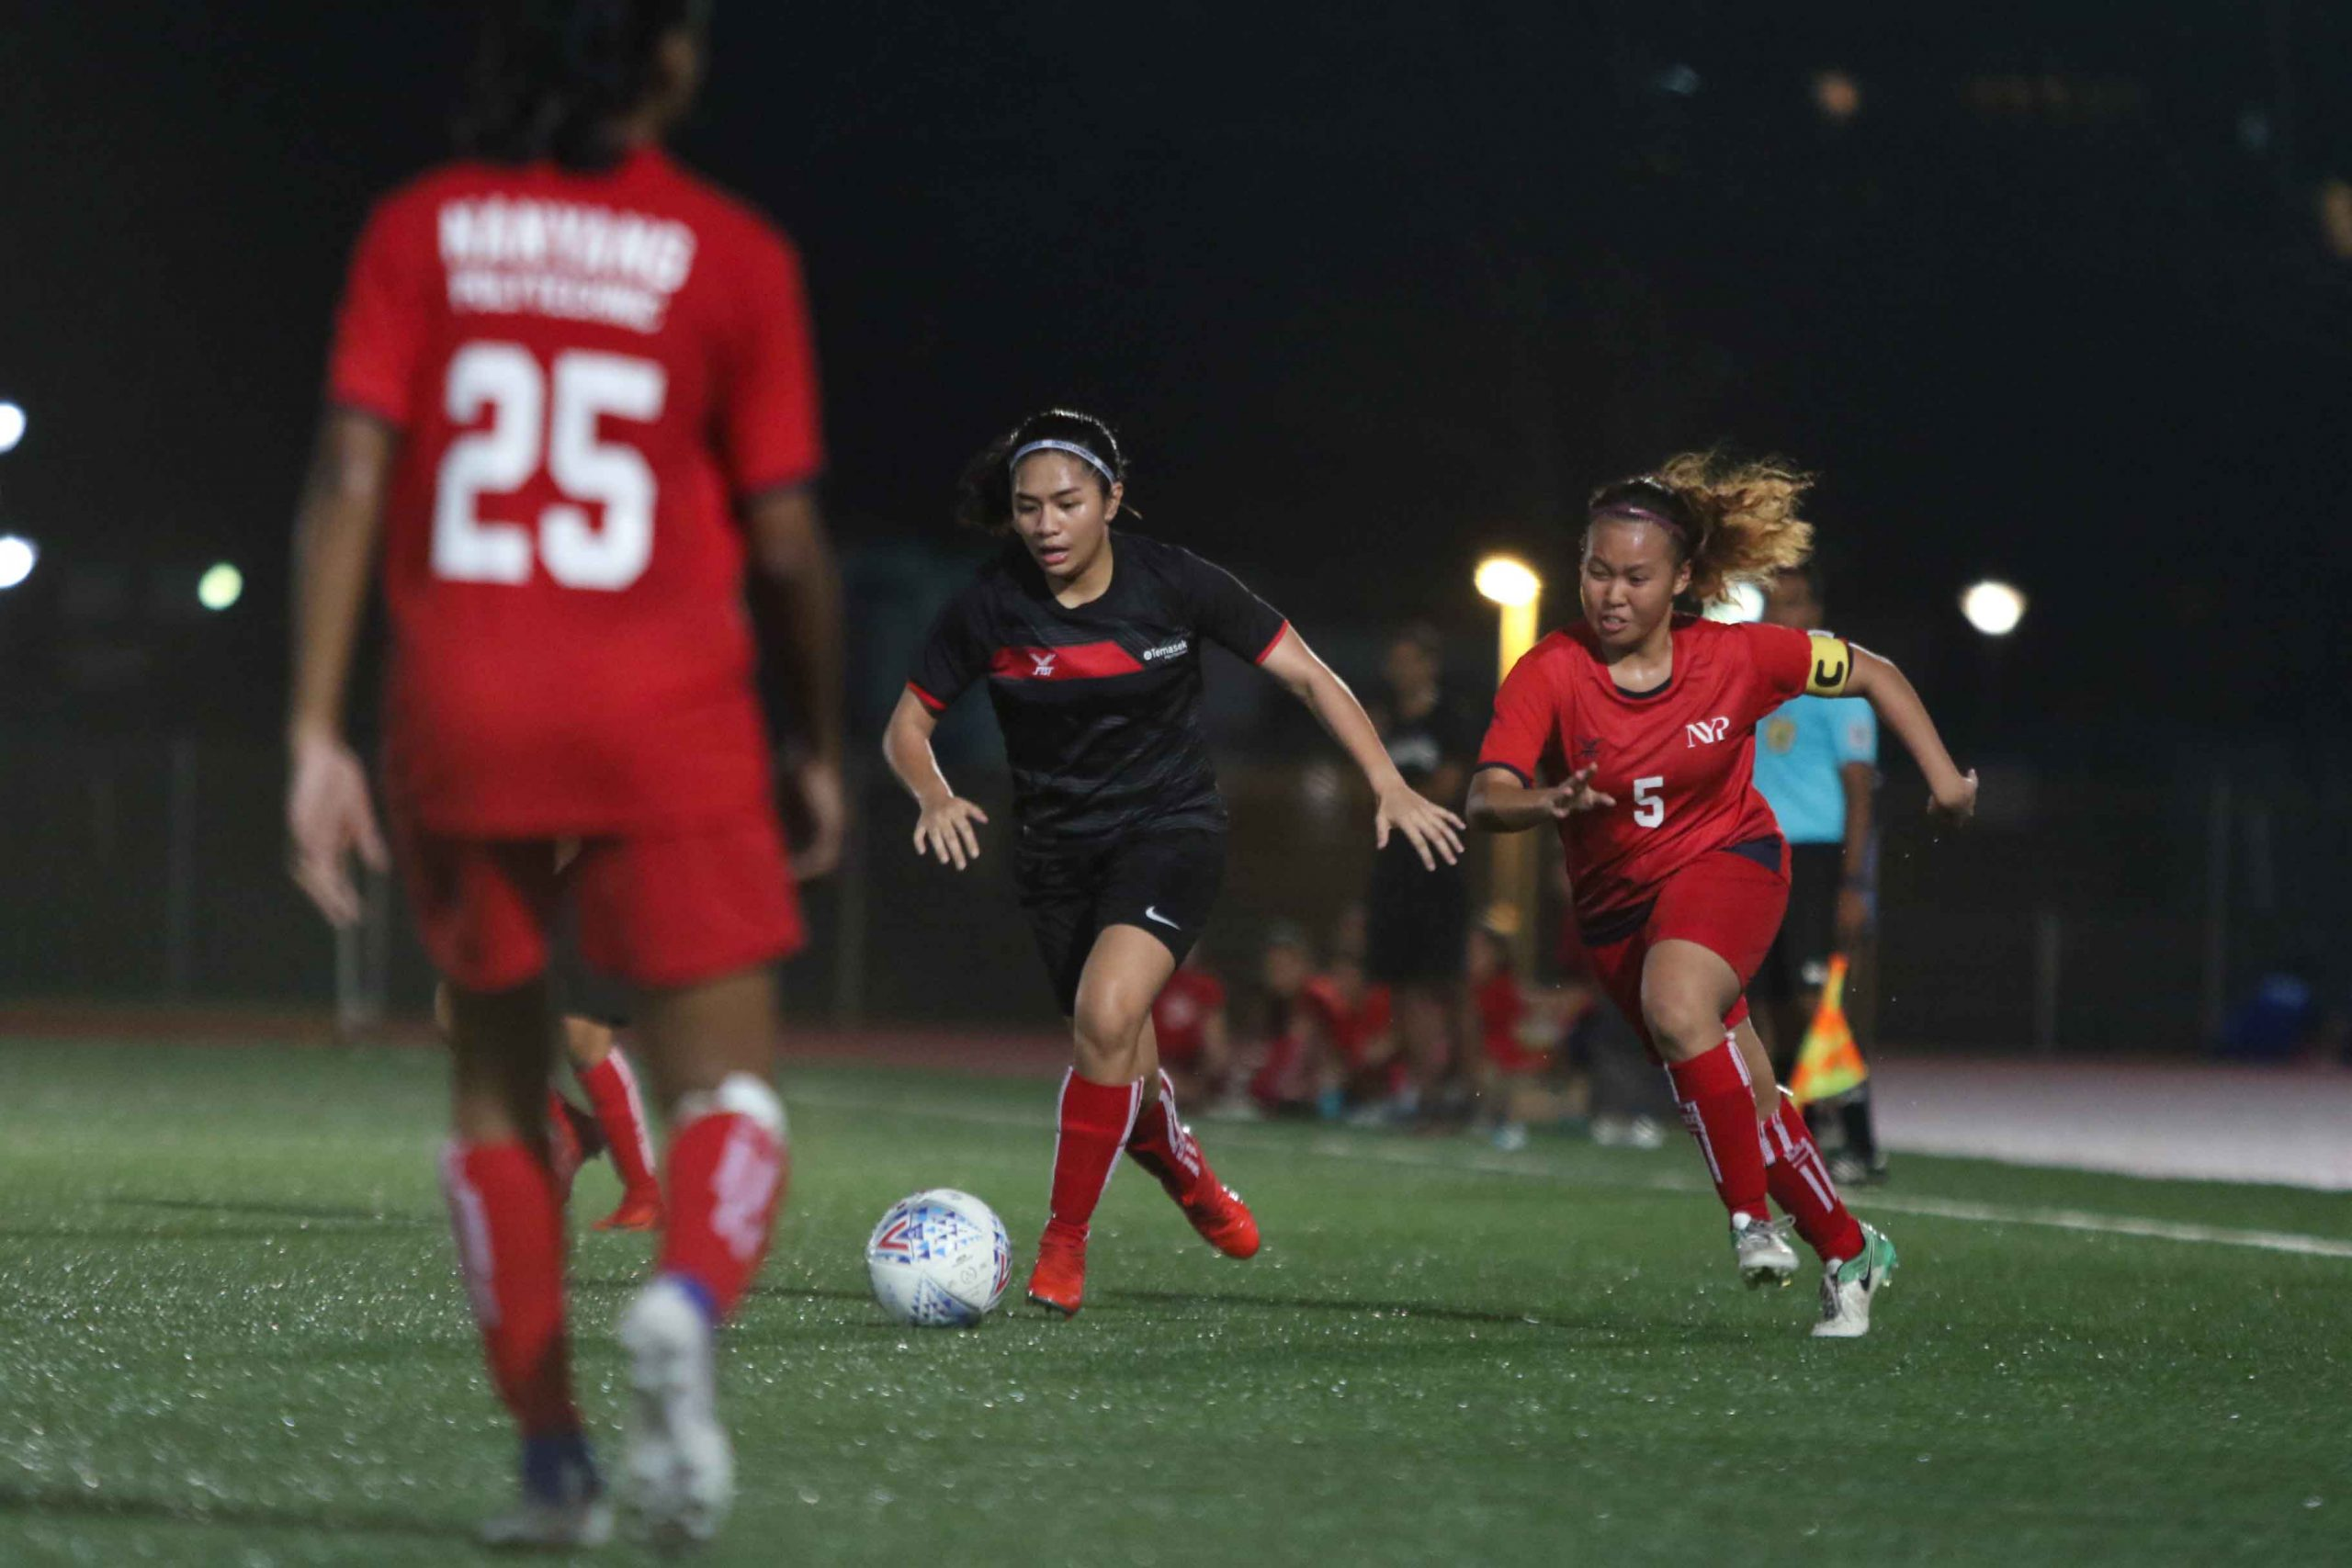 TP and NYP battle out 1-1 draw in their final POLITE fixture. (Photo 10 © Clara Lau/Red Sports)